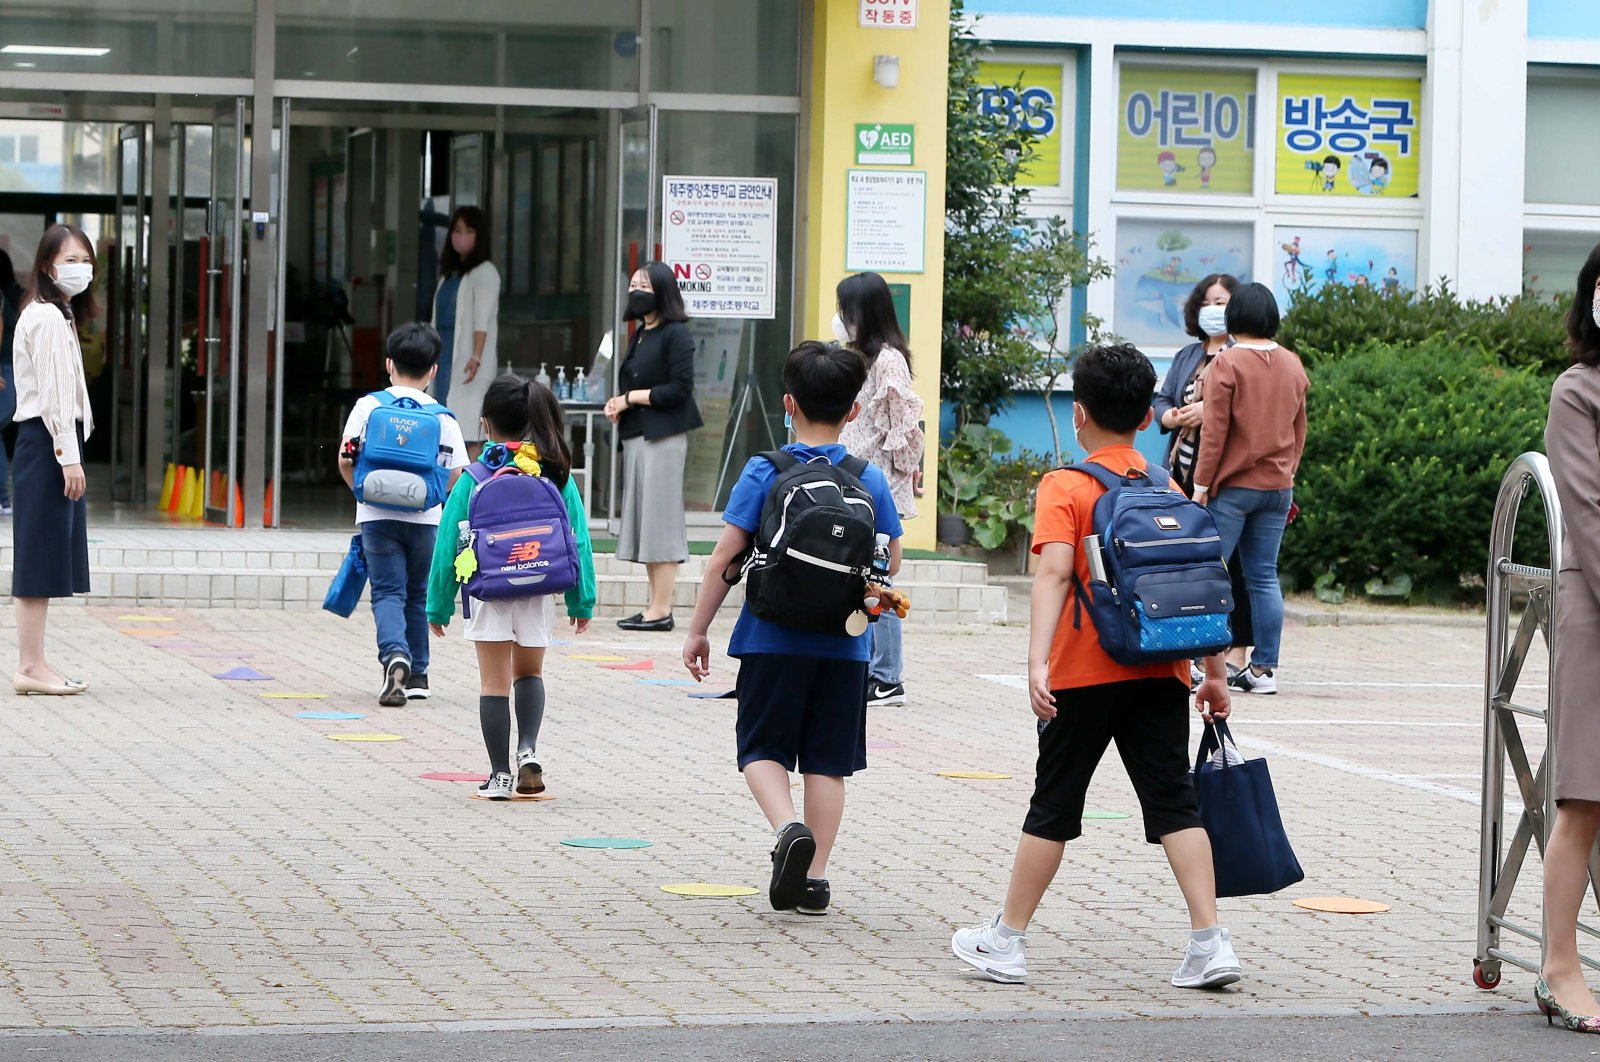 Students arrive at school while keeping distance from each other at Joongang Elementary School on Jeju Island, South Korea, 03 June 2020. (EPA Photo)